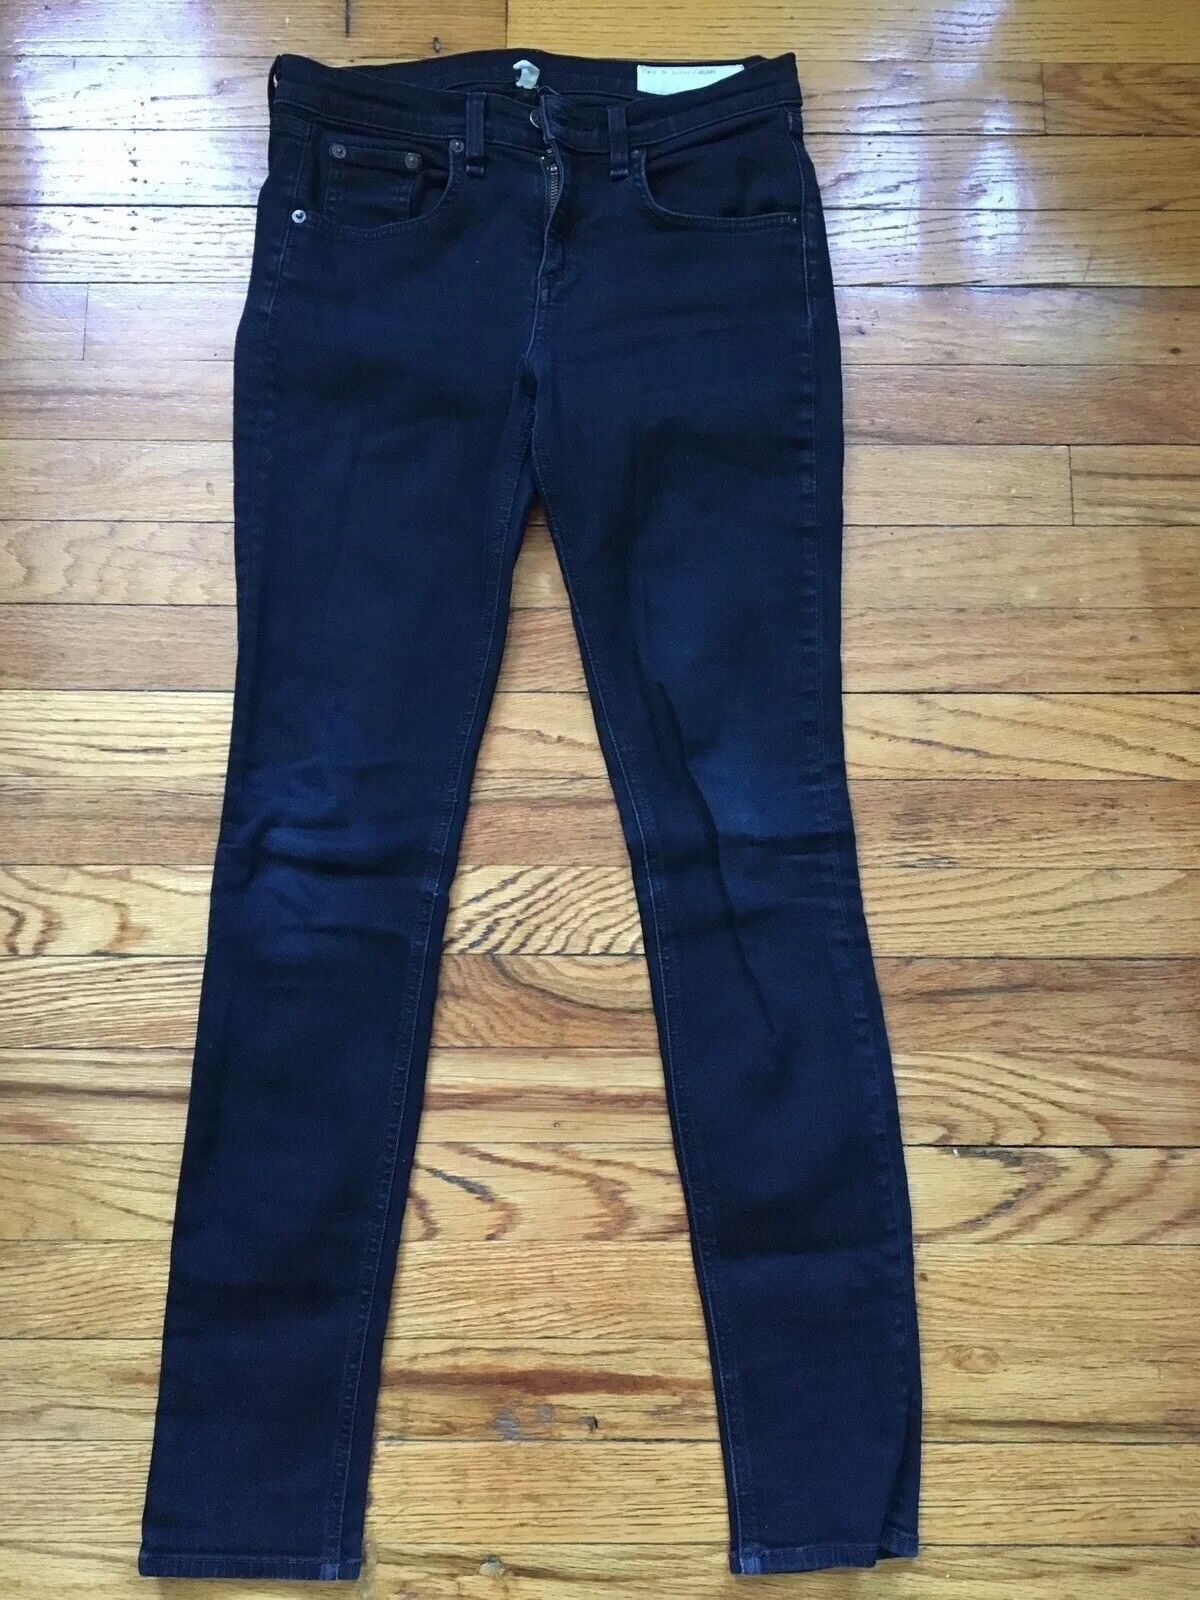 Rag & Bone High Rise Skinny Coal Wash Size 26